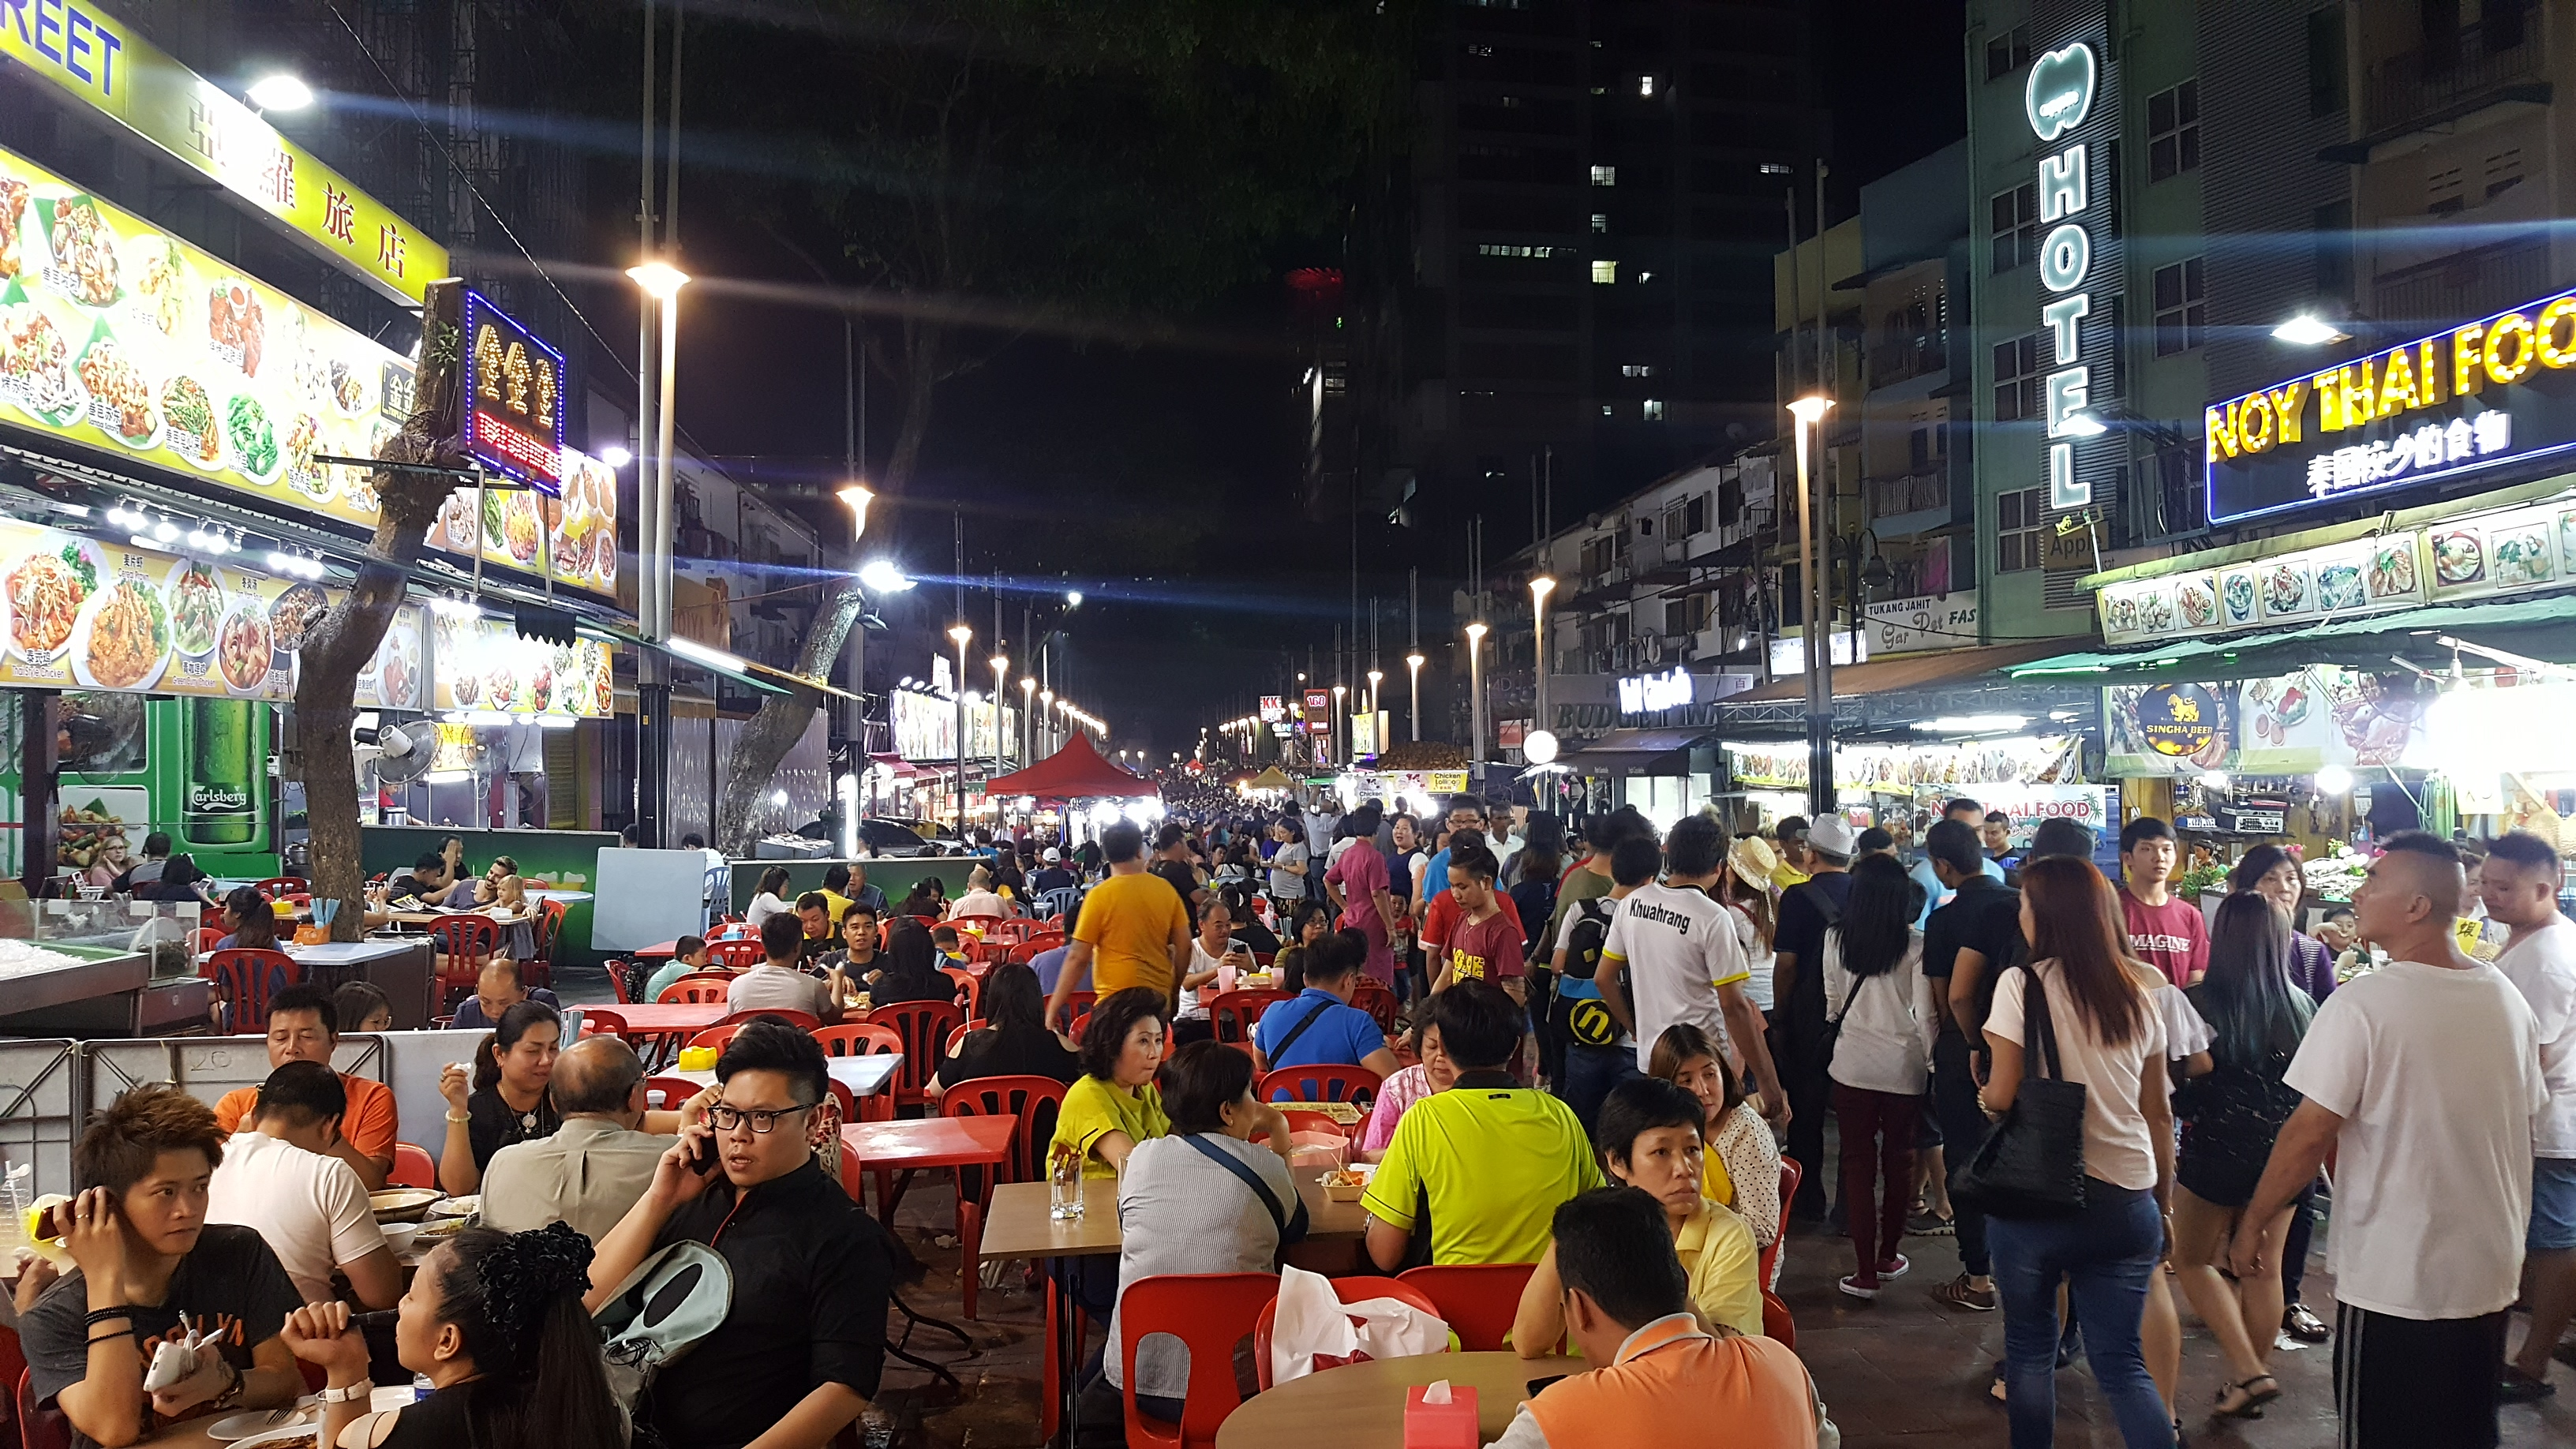 Jalan Alor street food market at night. Tables with people eating on the left, crowds walking past restaurants and food stands on the right. It looks simple. but colourful and lively